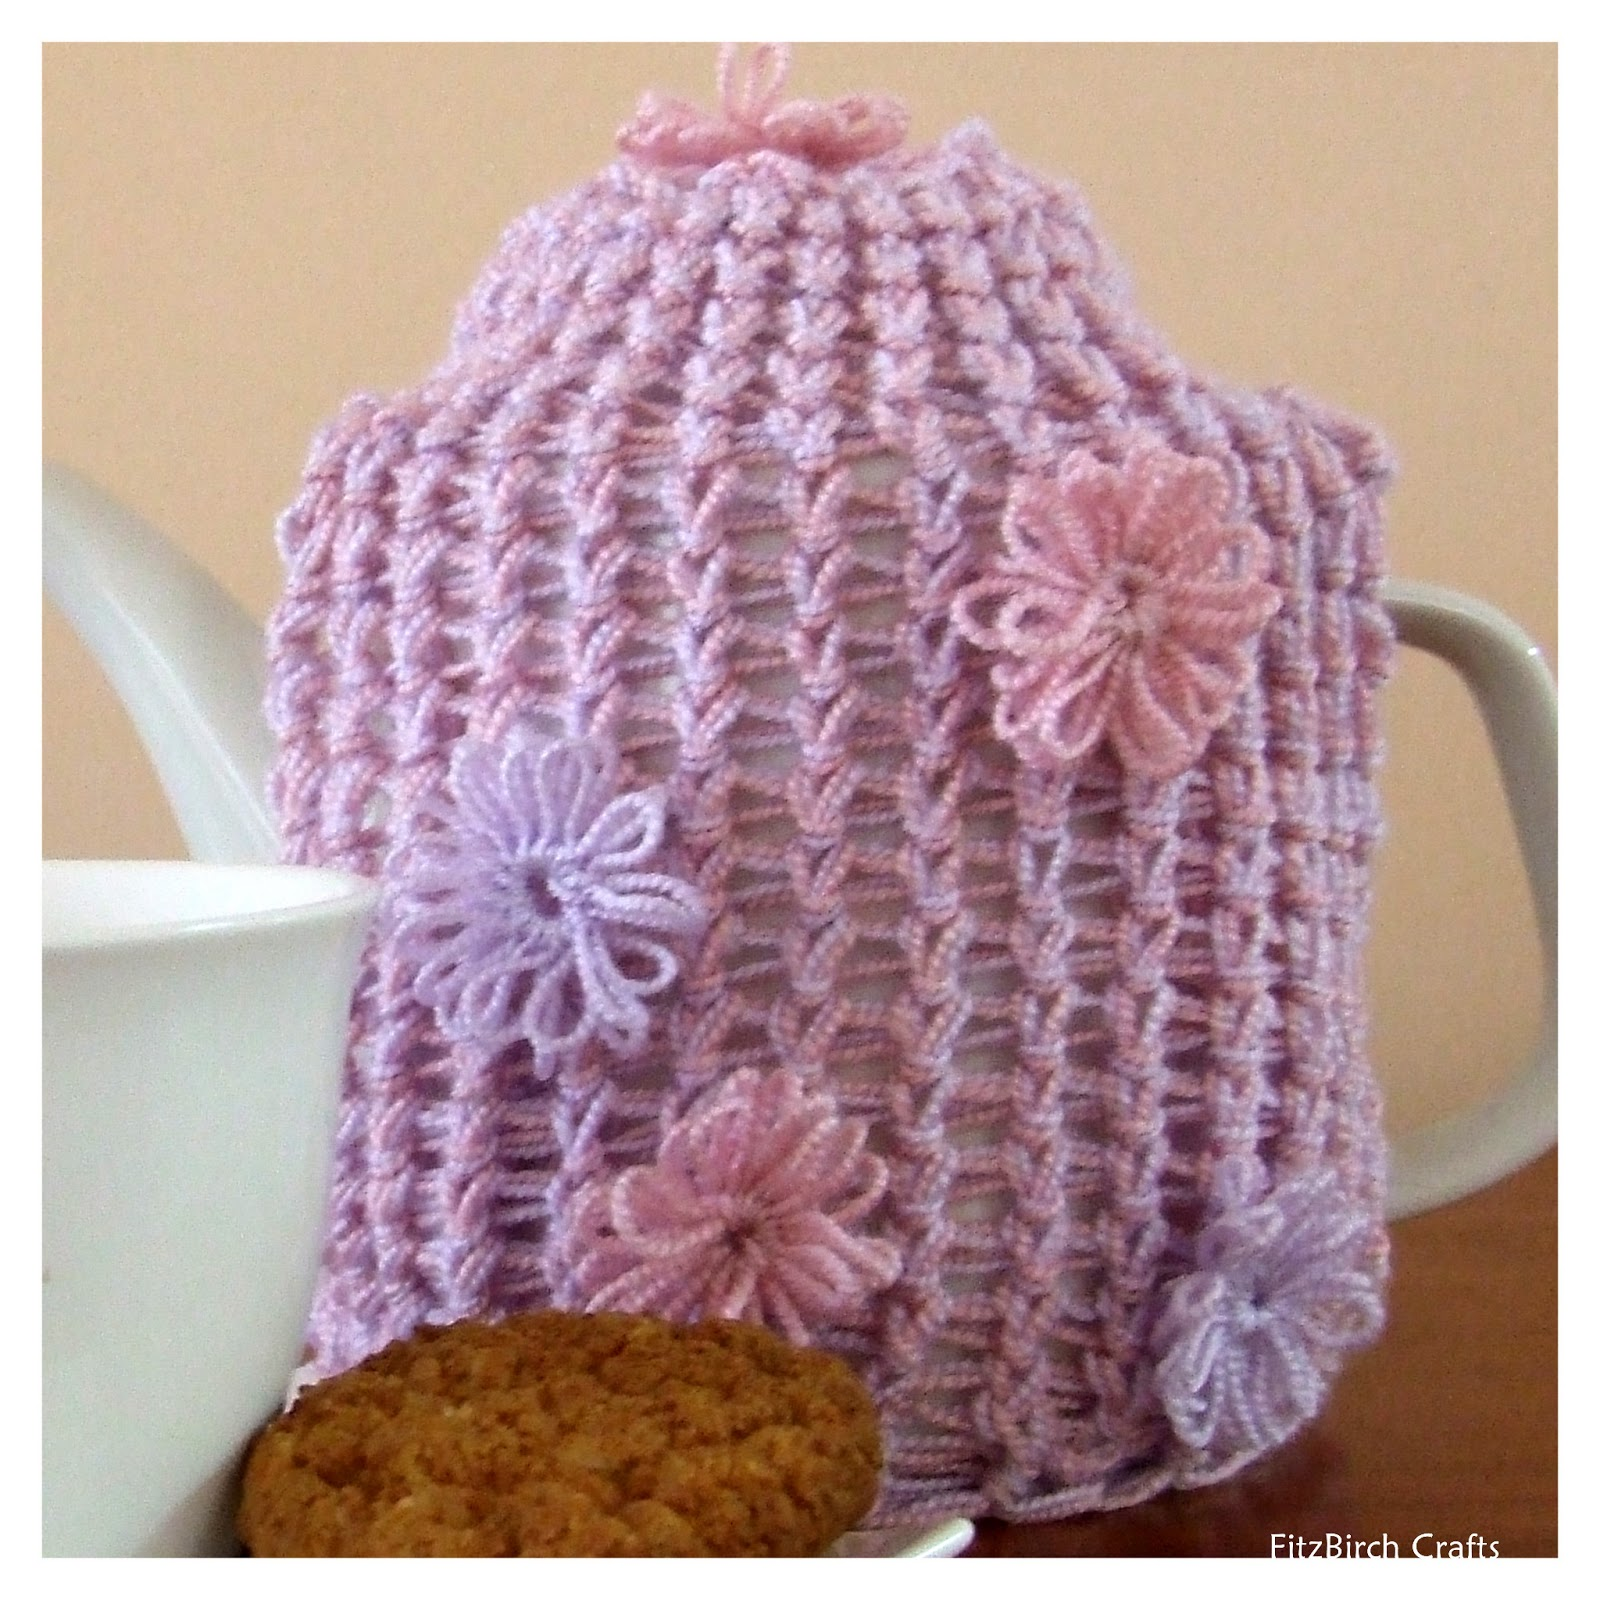 Loom Knitting Patterns : FitzBirch Crafts: Loom Knit Tea Cosy